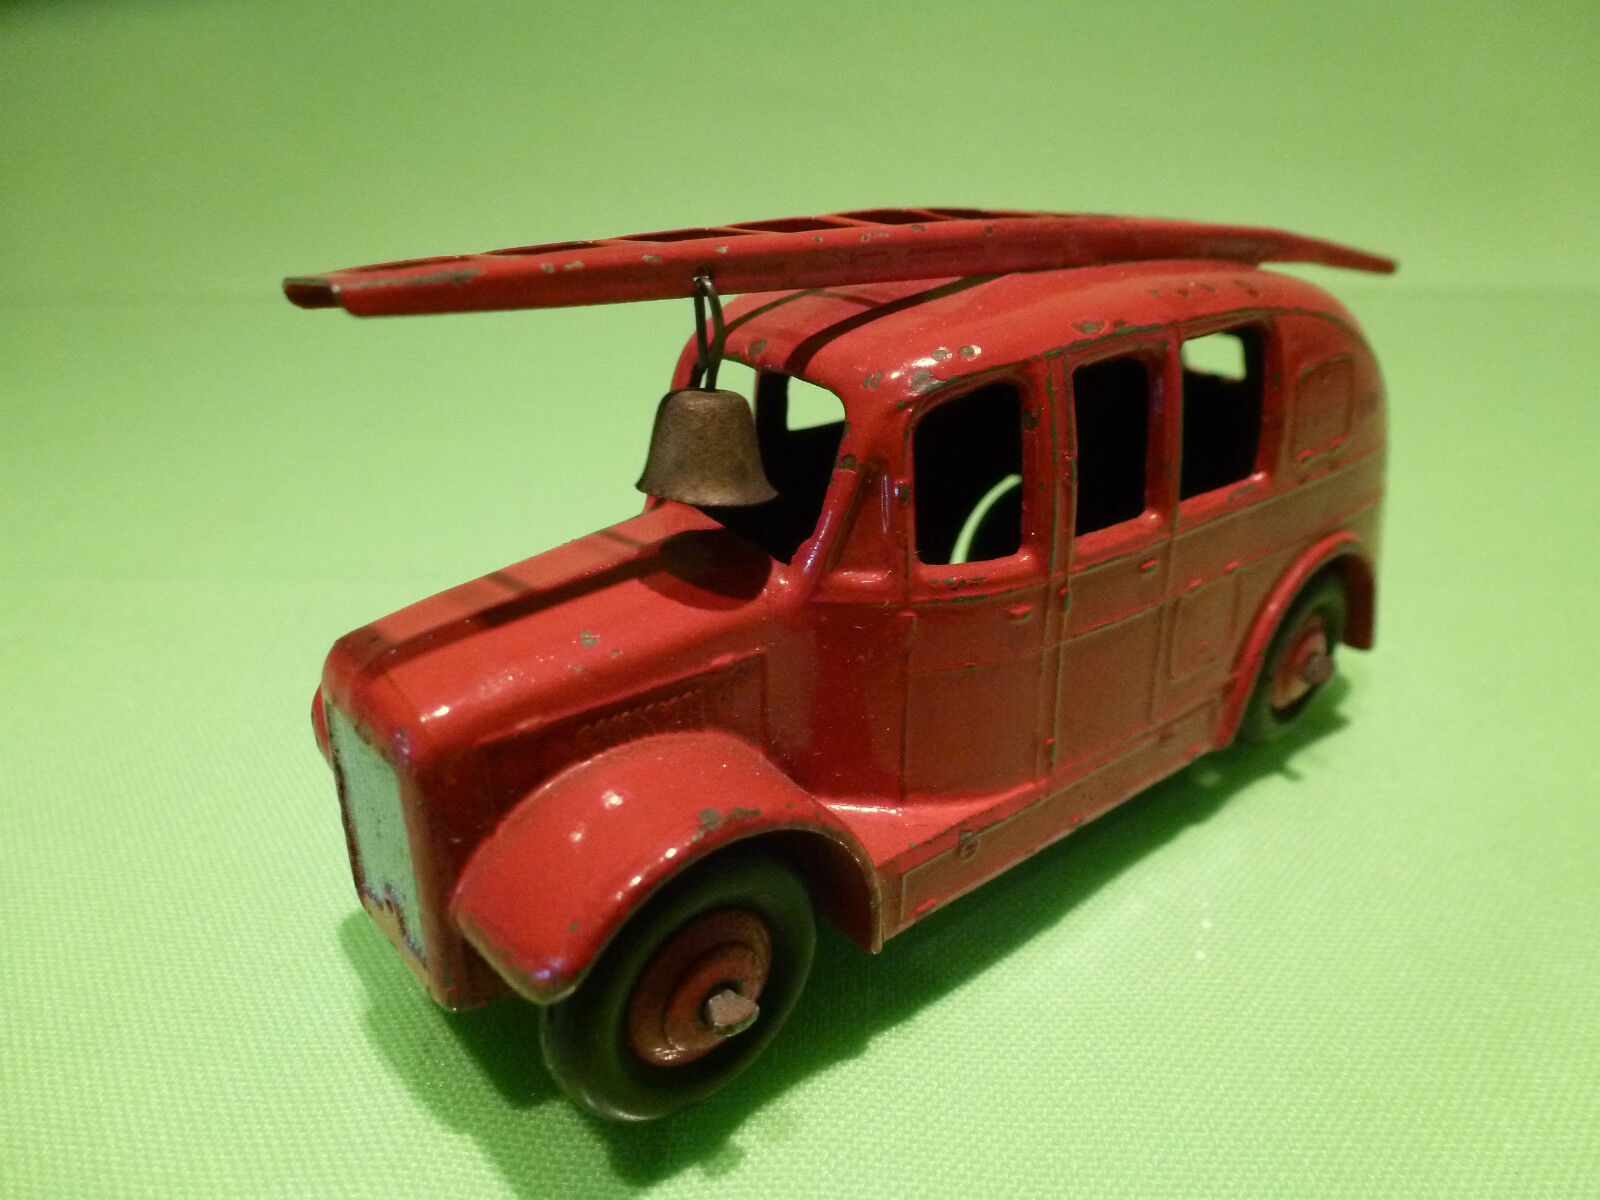 DINKY TOYS 250 STREAM LINED FIRE ENGINE - RED 1 43 - RARE SELTEN -  VERY GOOD